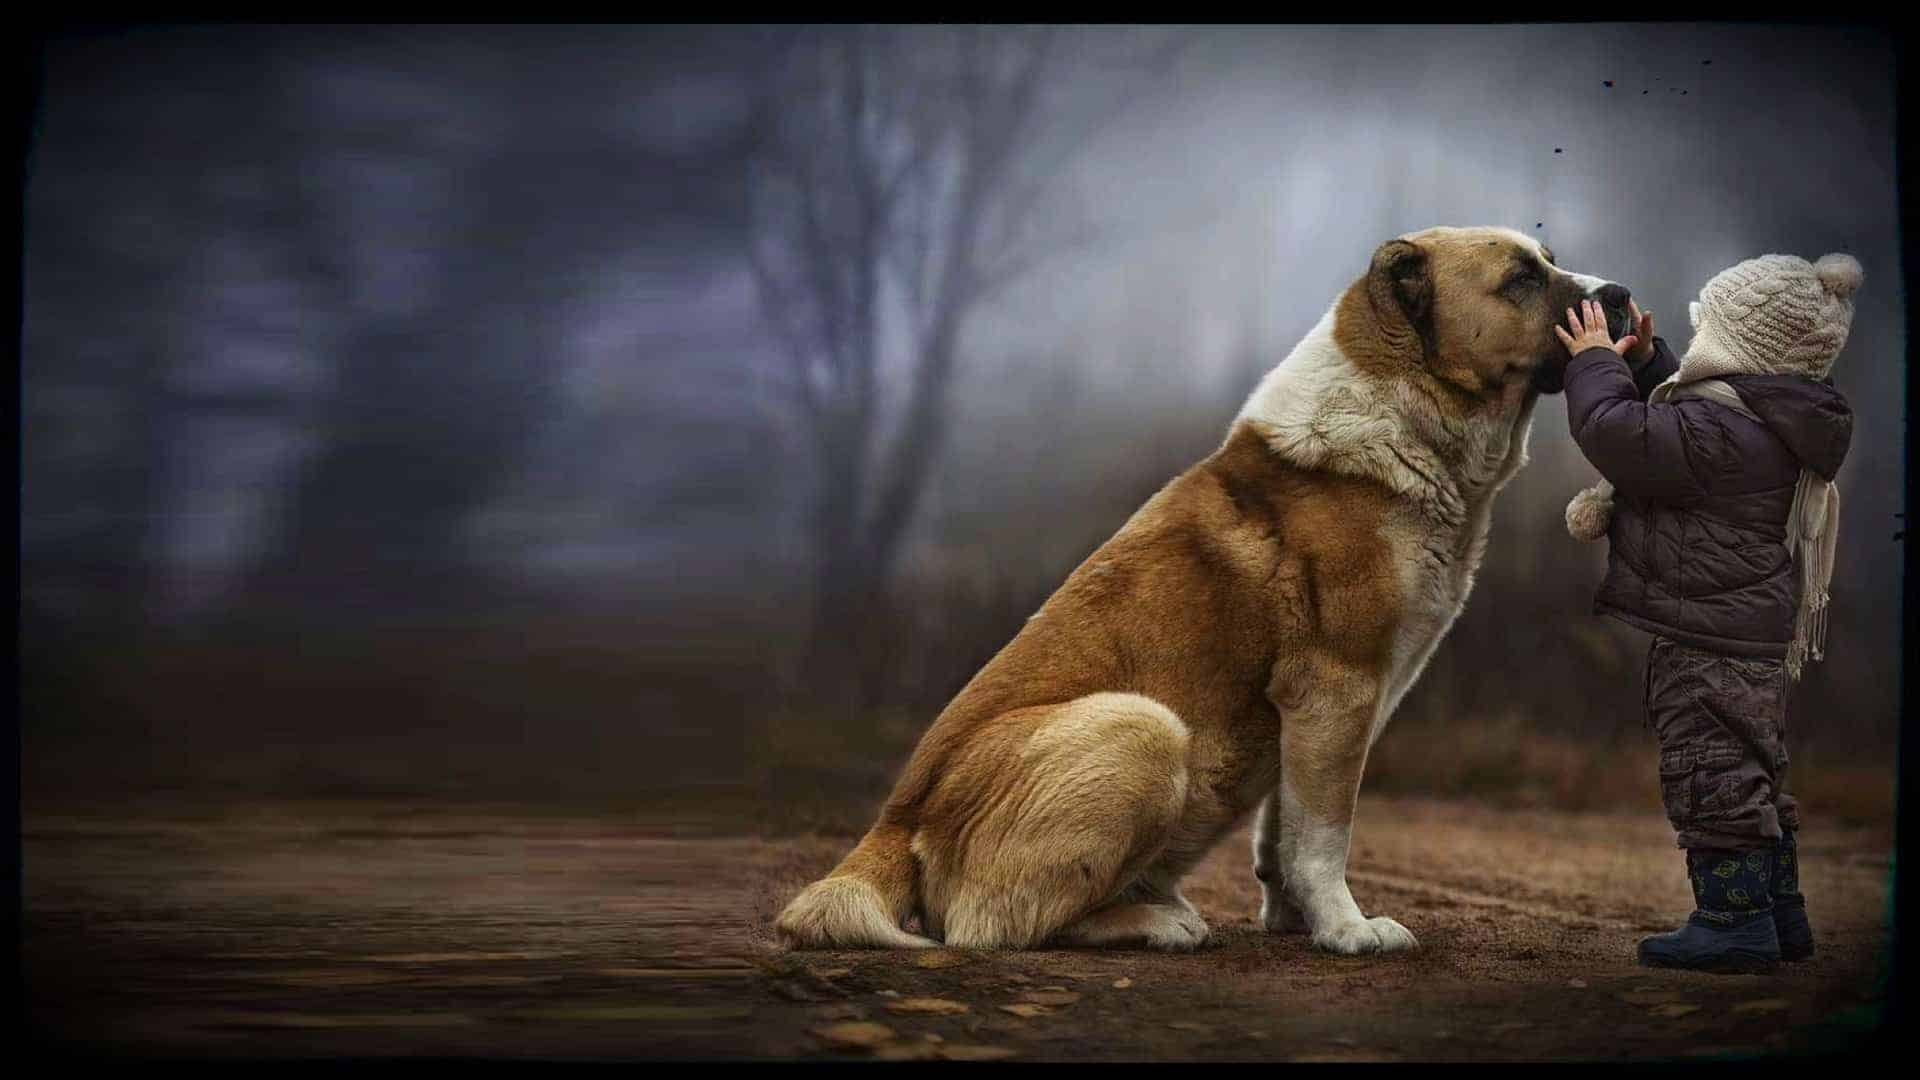 In a beautiful scene, a large, truly gorgeous, dog sits on its hind legs waiting patiently whilst a small child reaches up and gently grabs the dog's muzzle.